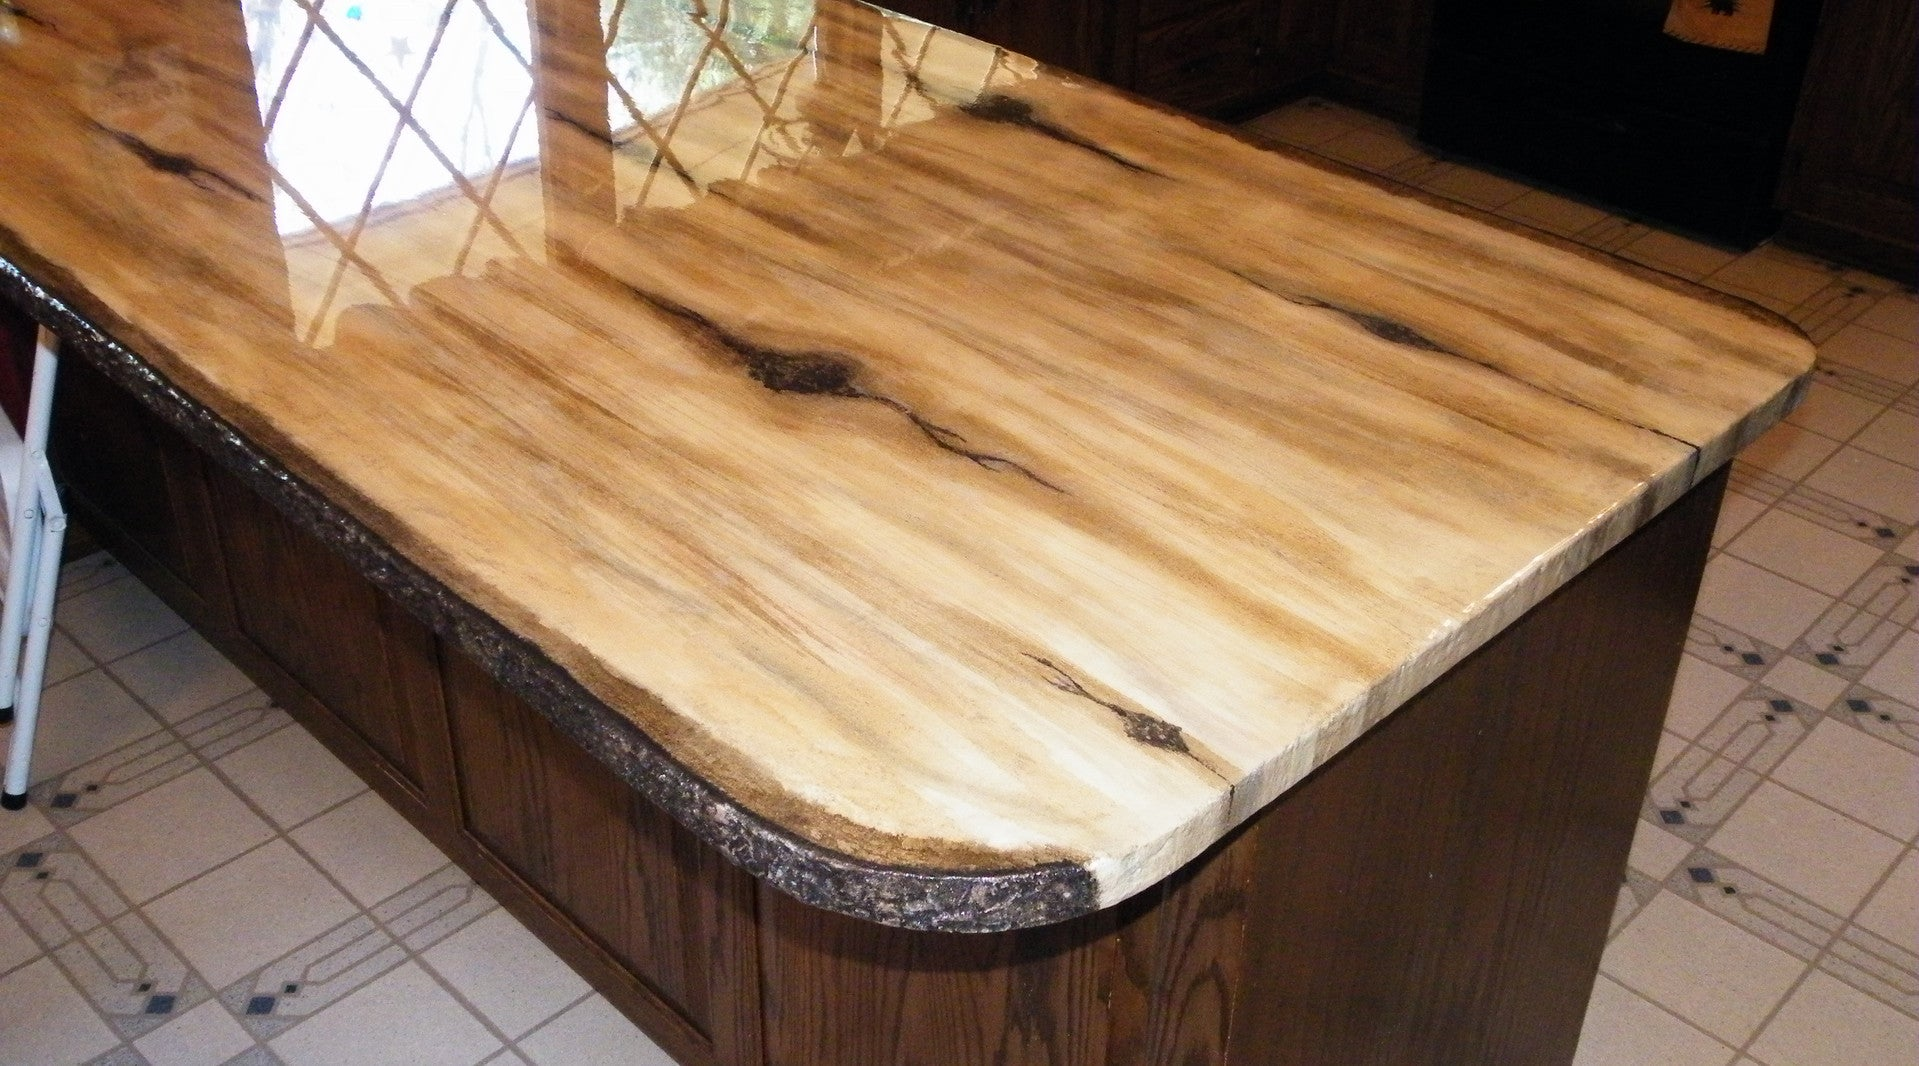 Custom Concrete Countertops!